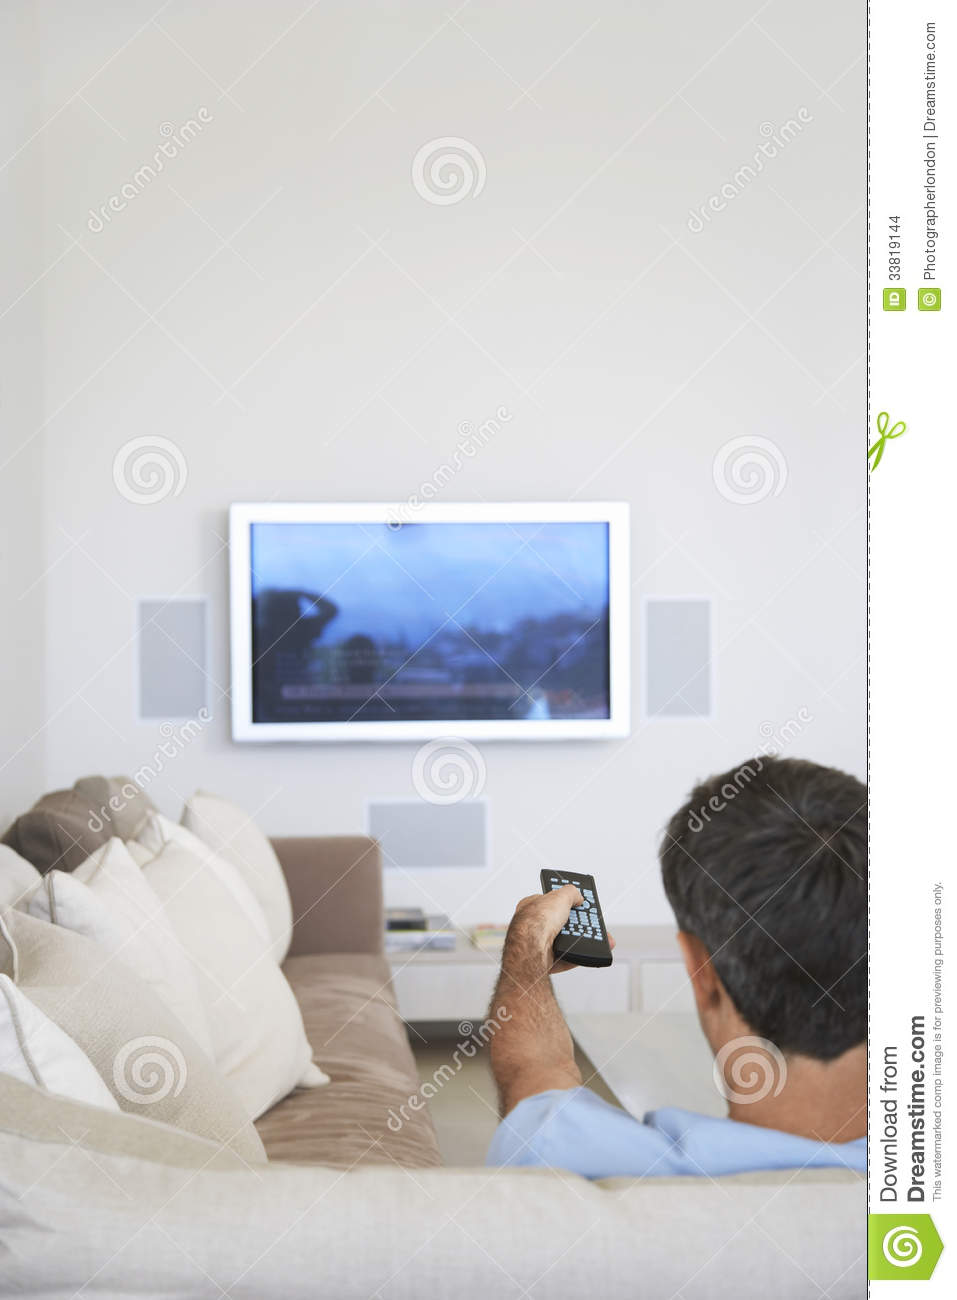 Man Watching Television In Living Room Stock Images